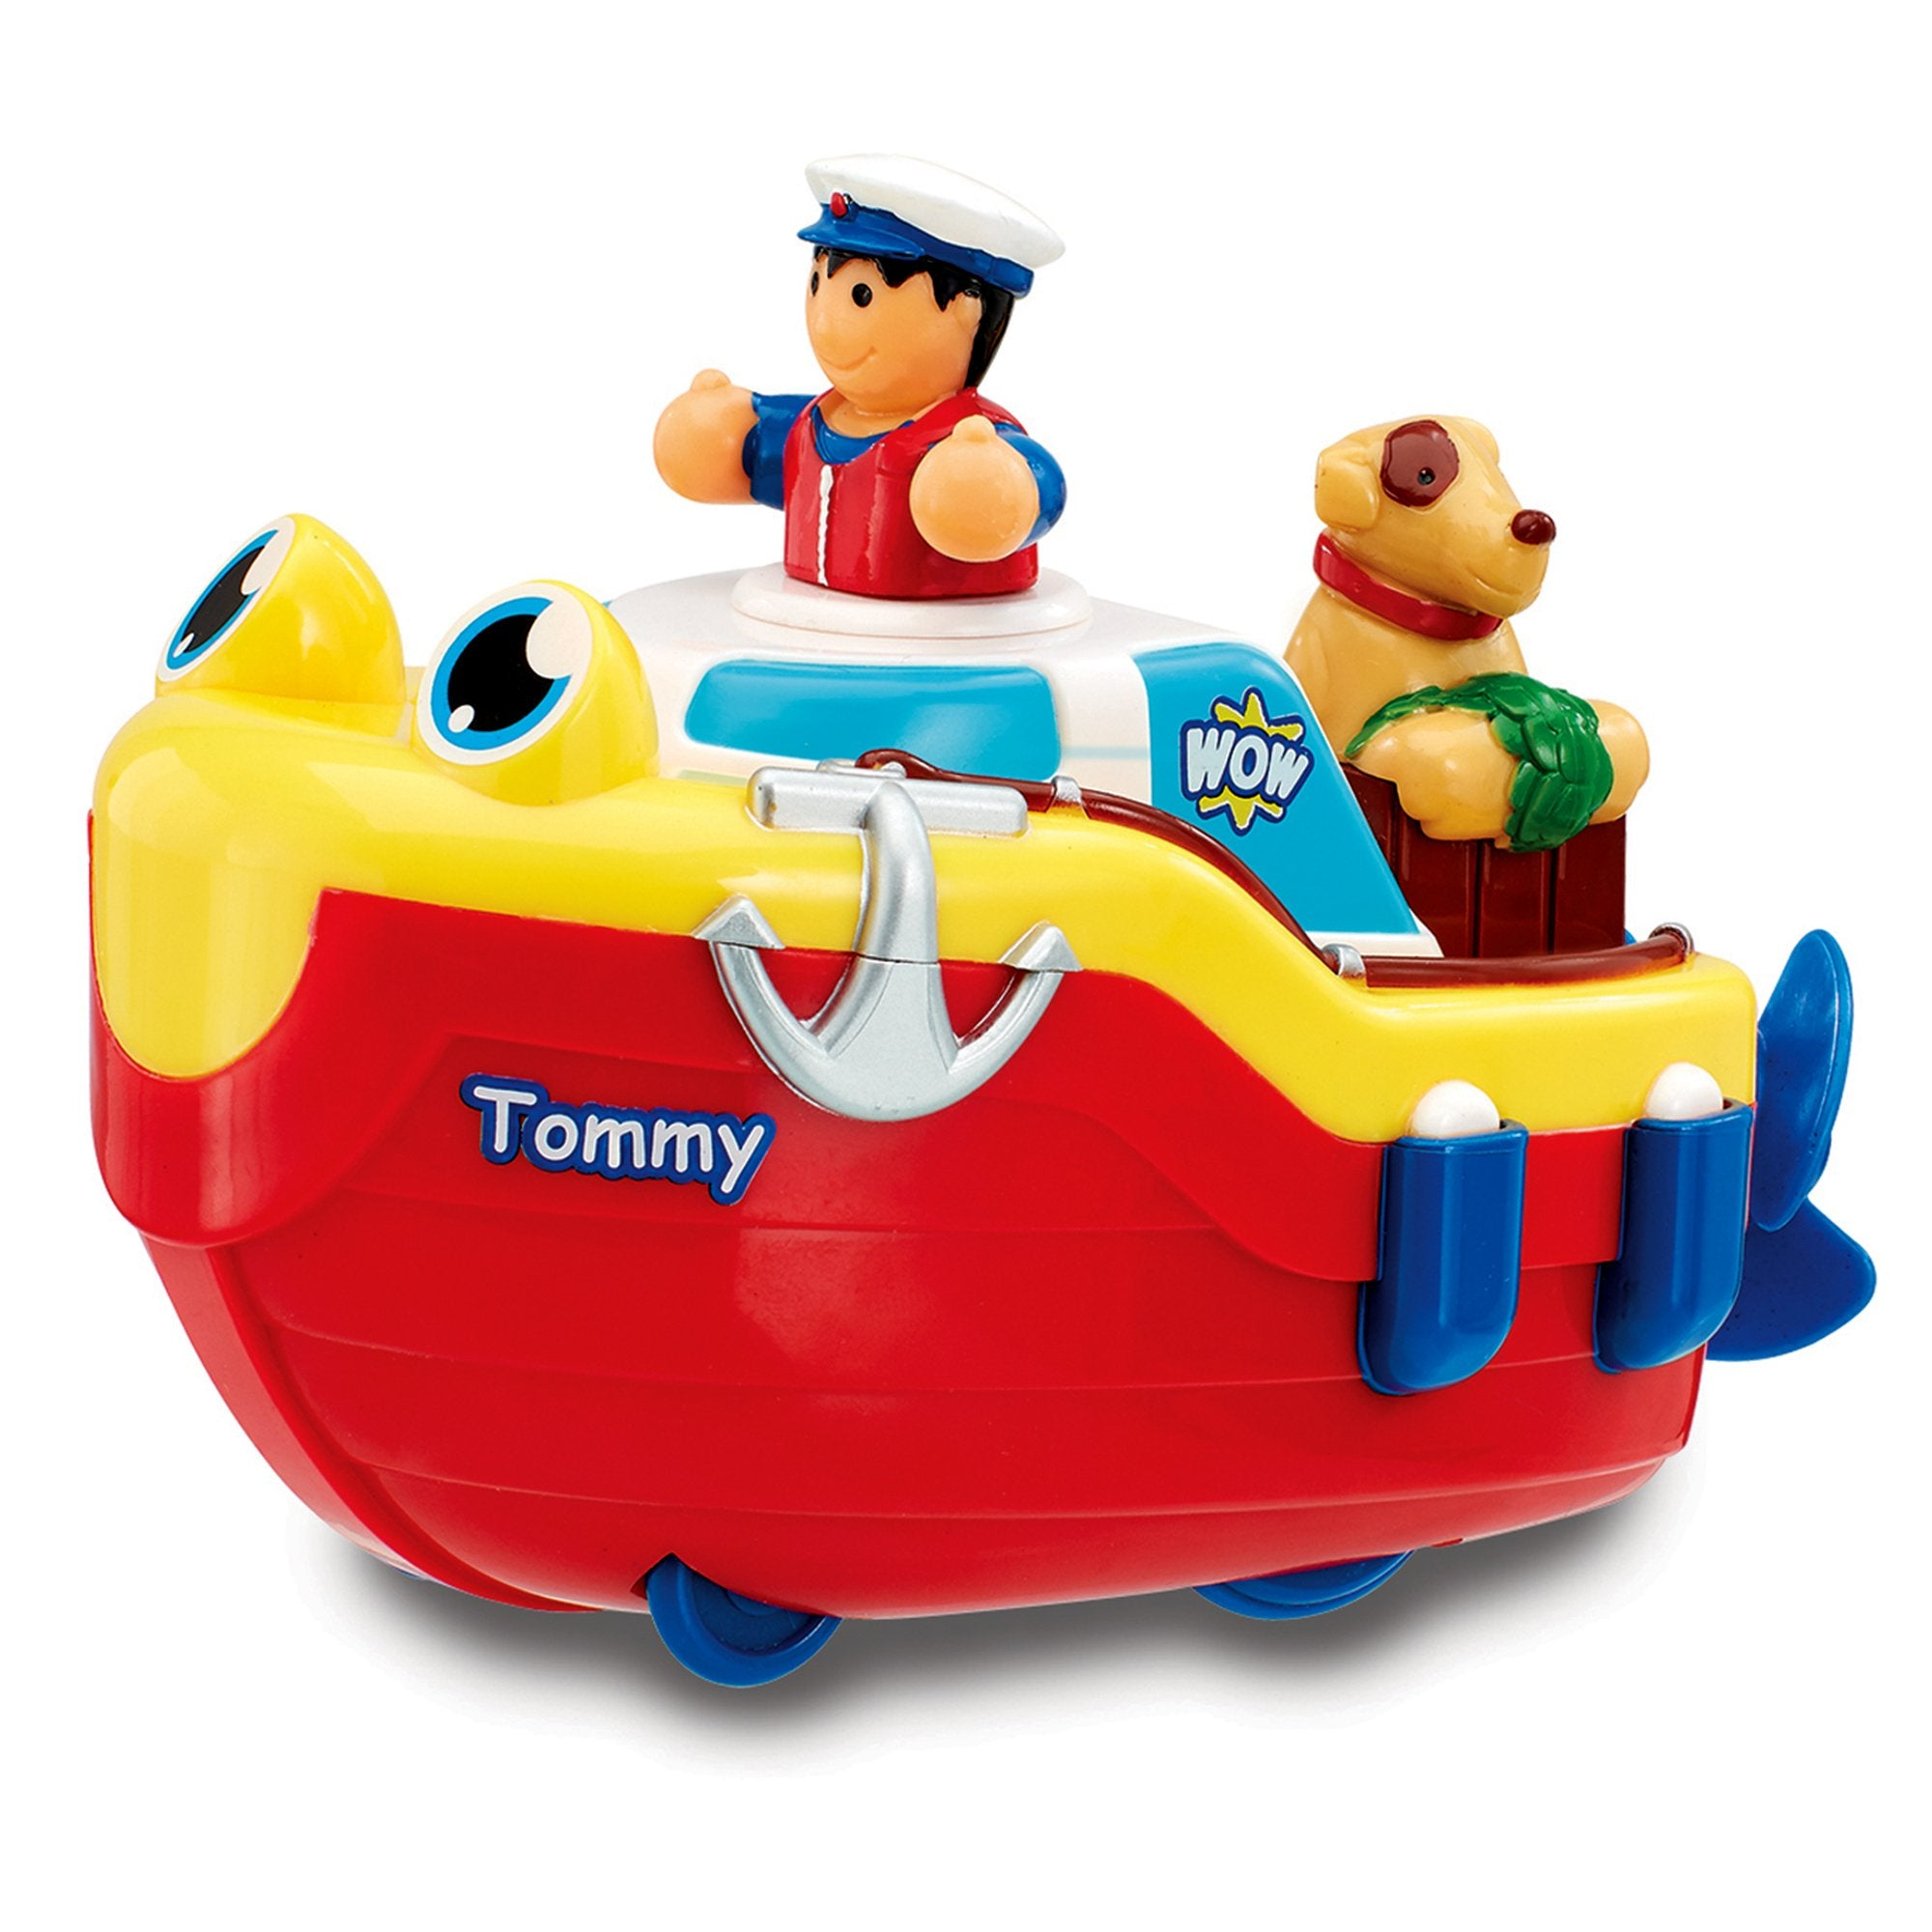 WOW Toys Tommy Tug Boat (Bath Toy)